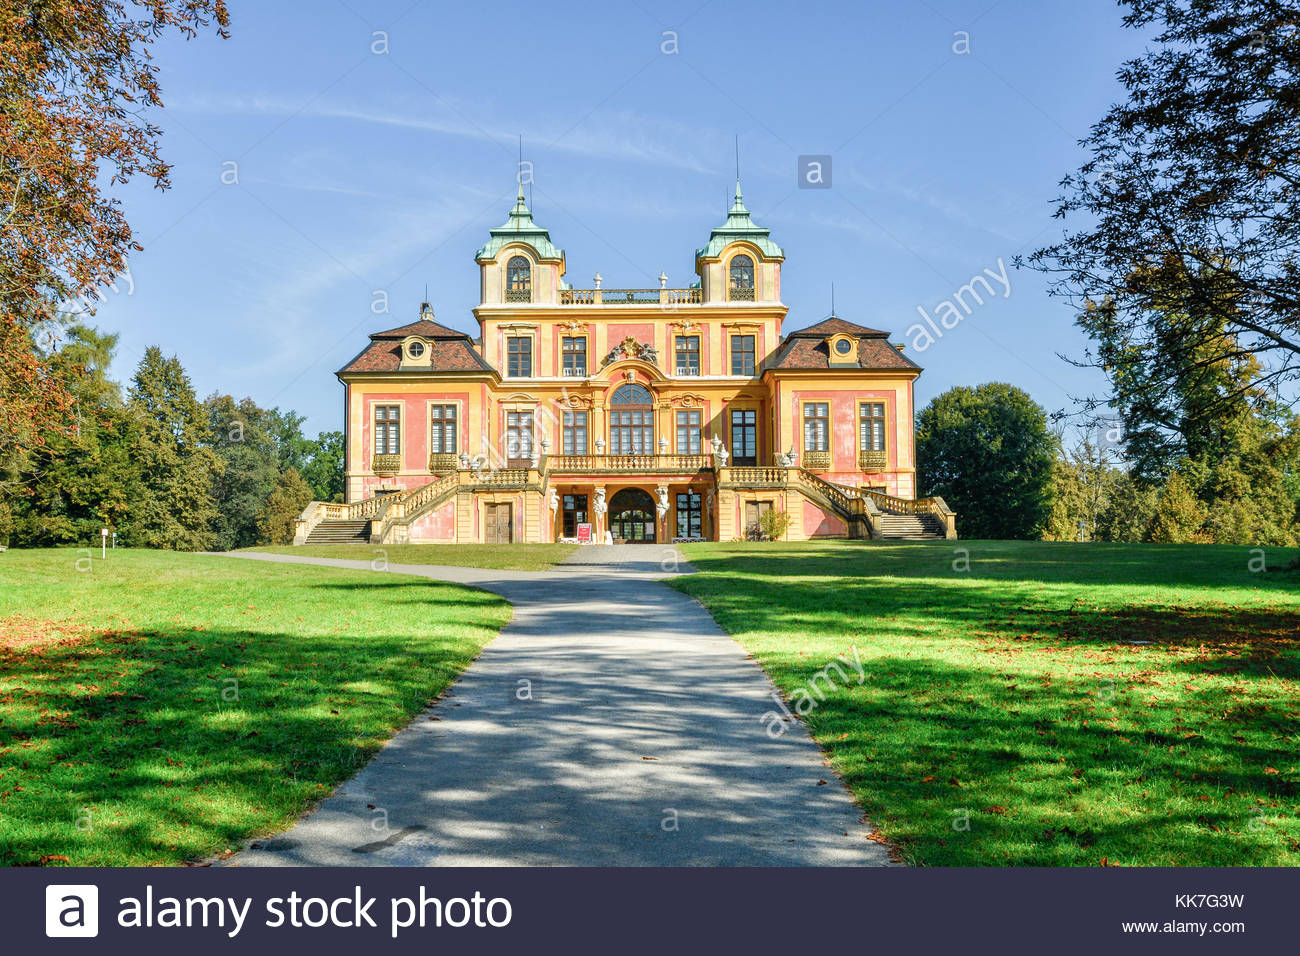 Schloss Favorite, Ludwigsburg, Baroque maison de plaisance and hunting lodge build under the rule of sovereign Duke - Stock Image